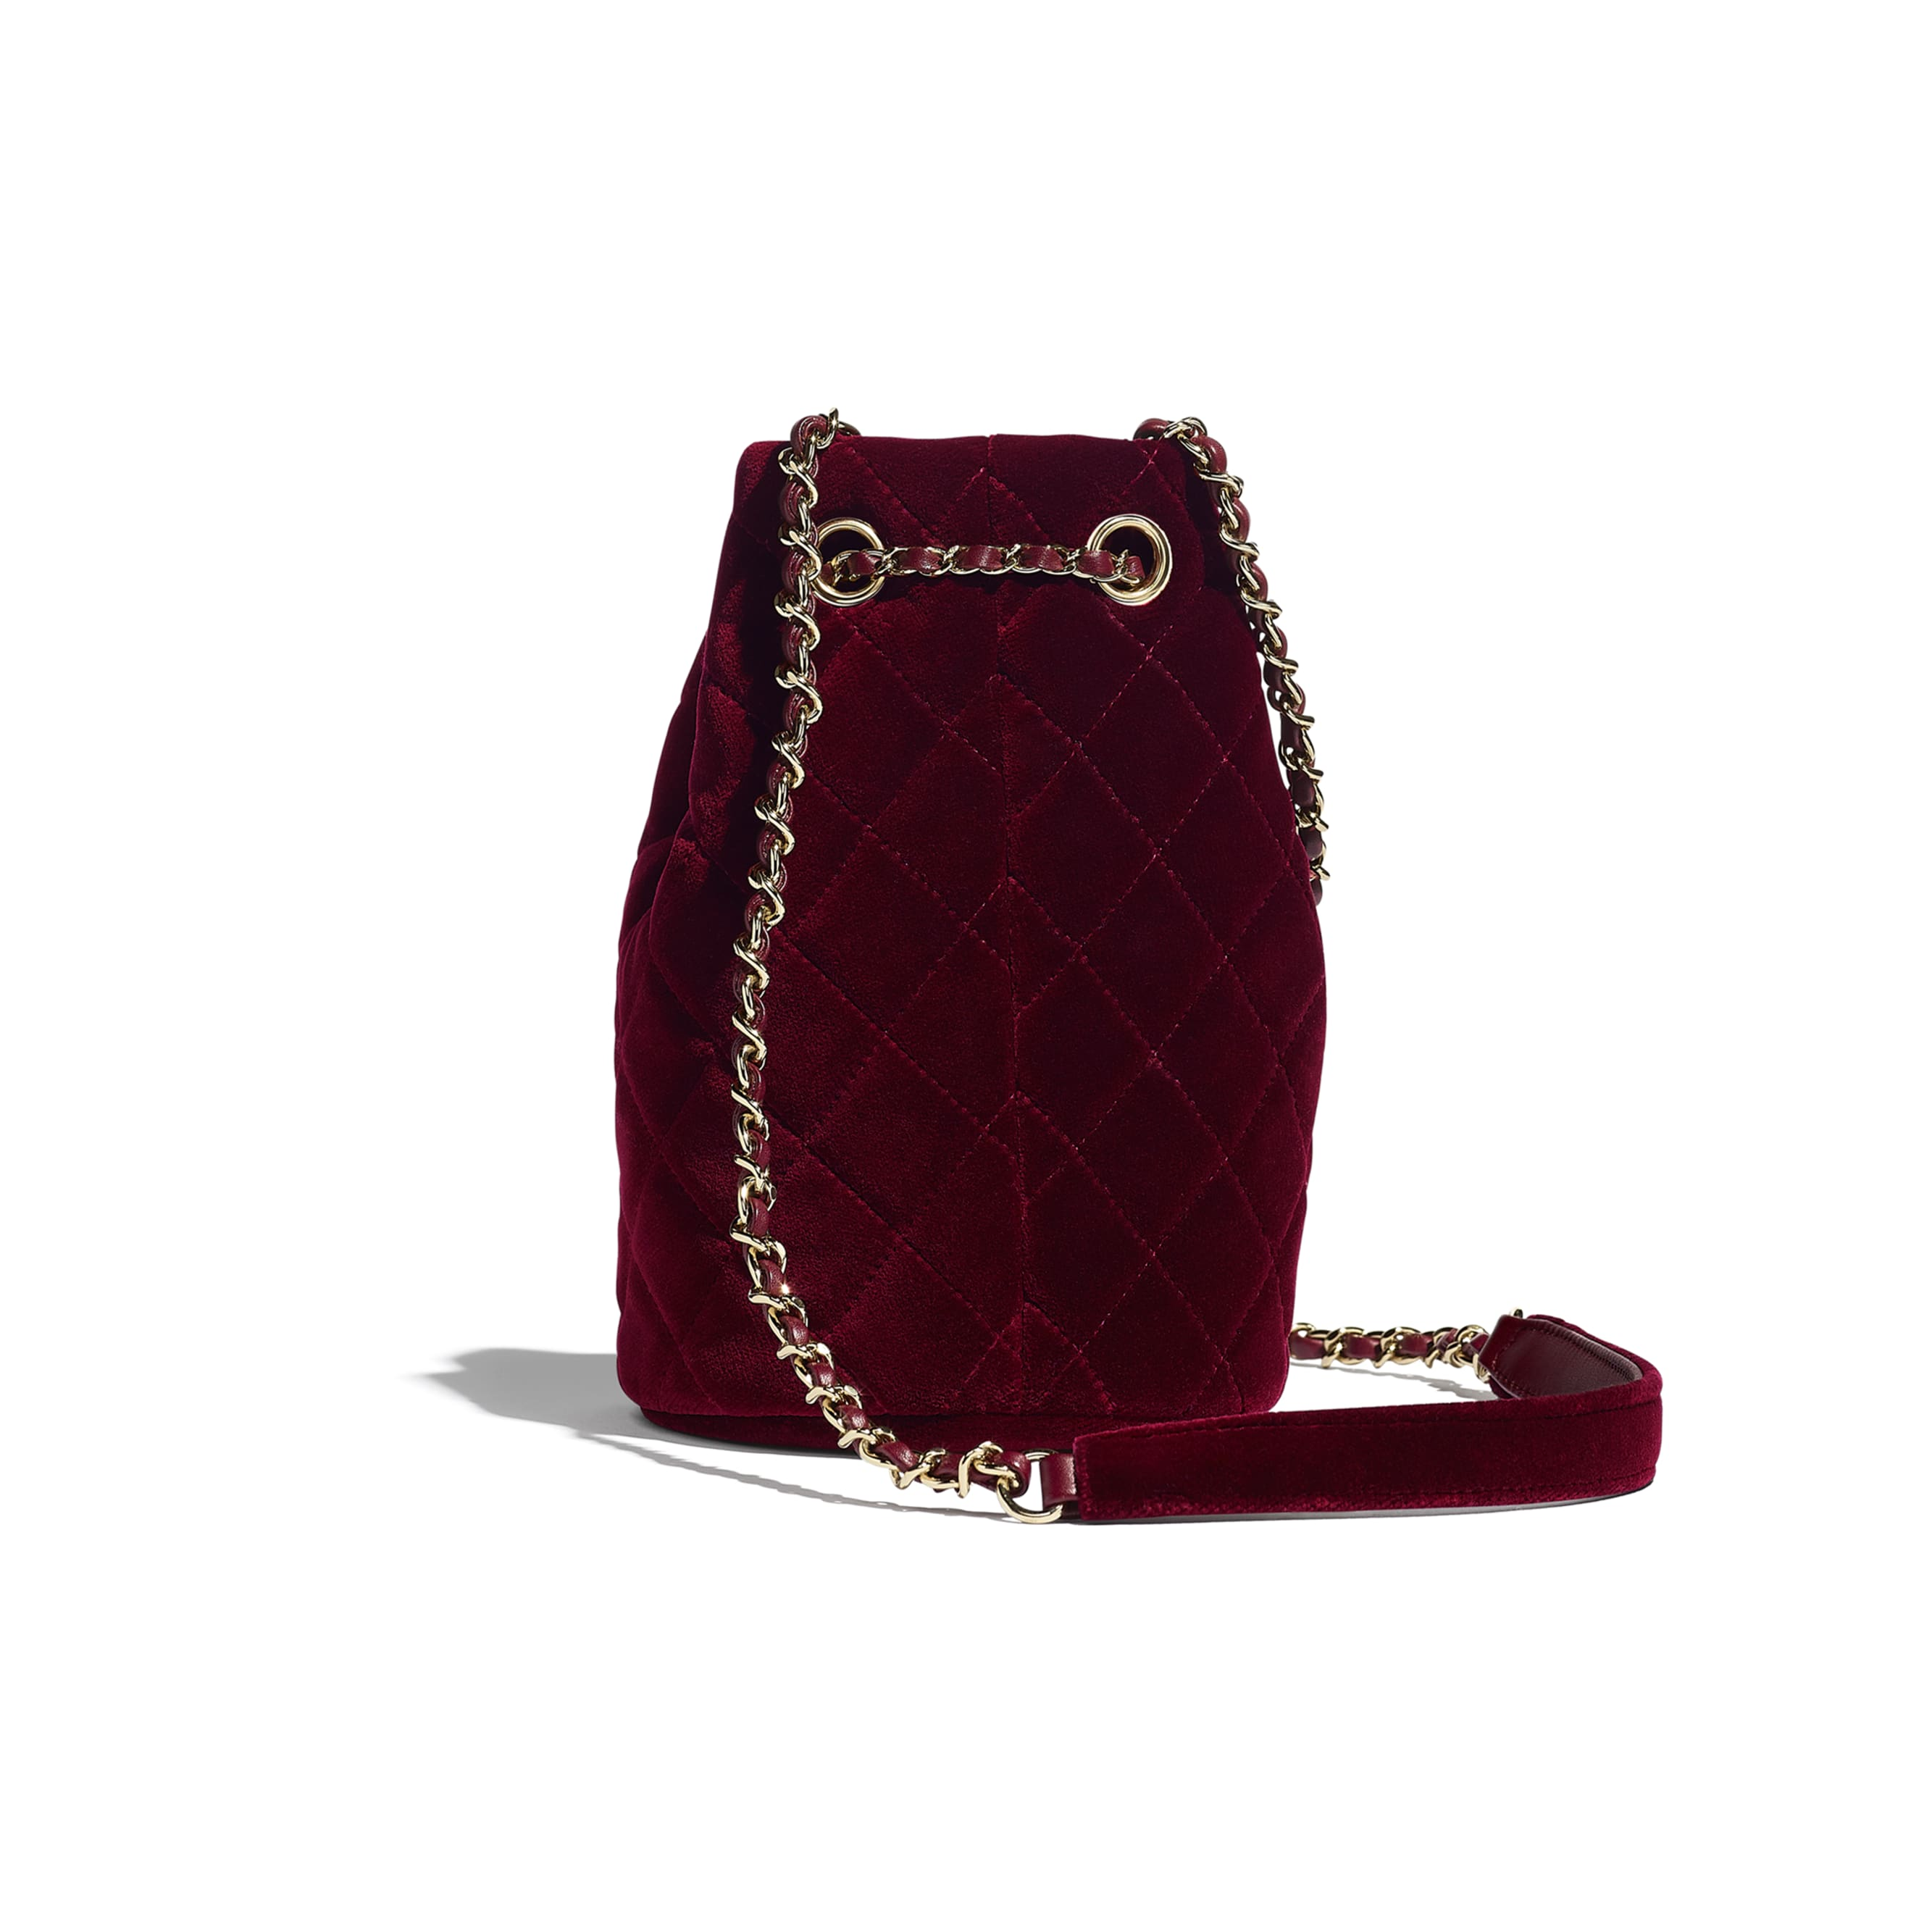 Drawstring Bag - Burgundy - Velvet, Diamanté & Gold-Tone Metal - CHANEL - Alternative view - see standard sized version